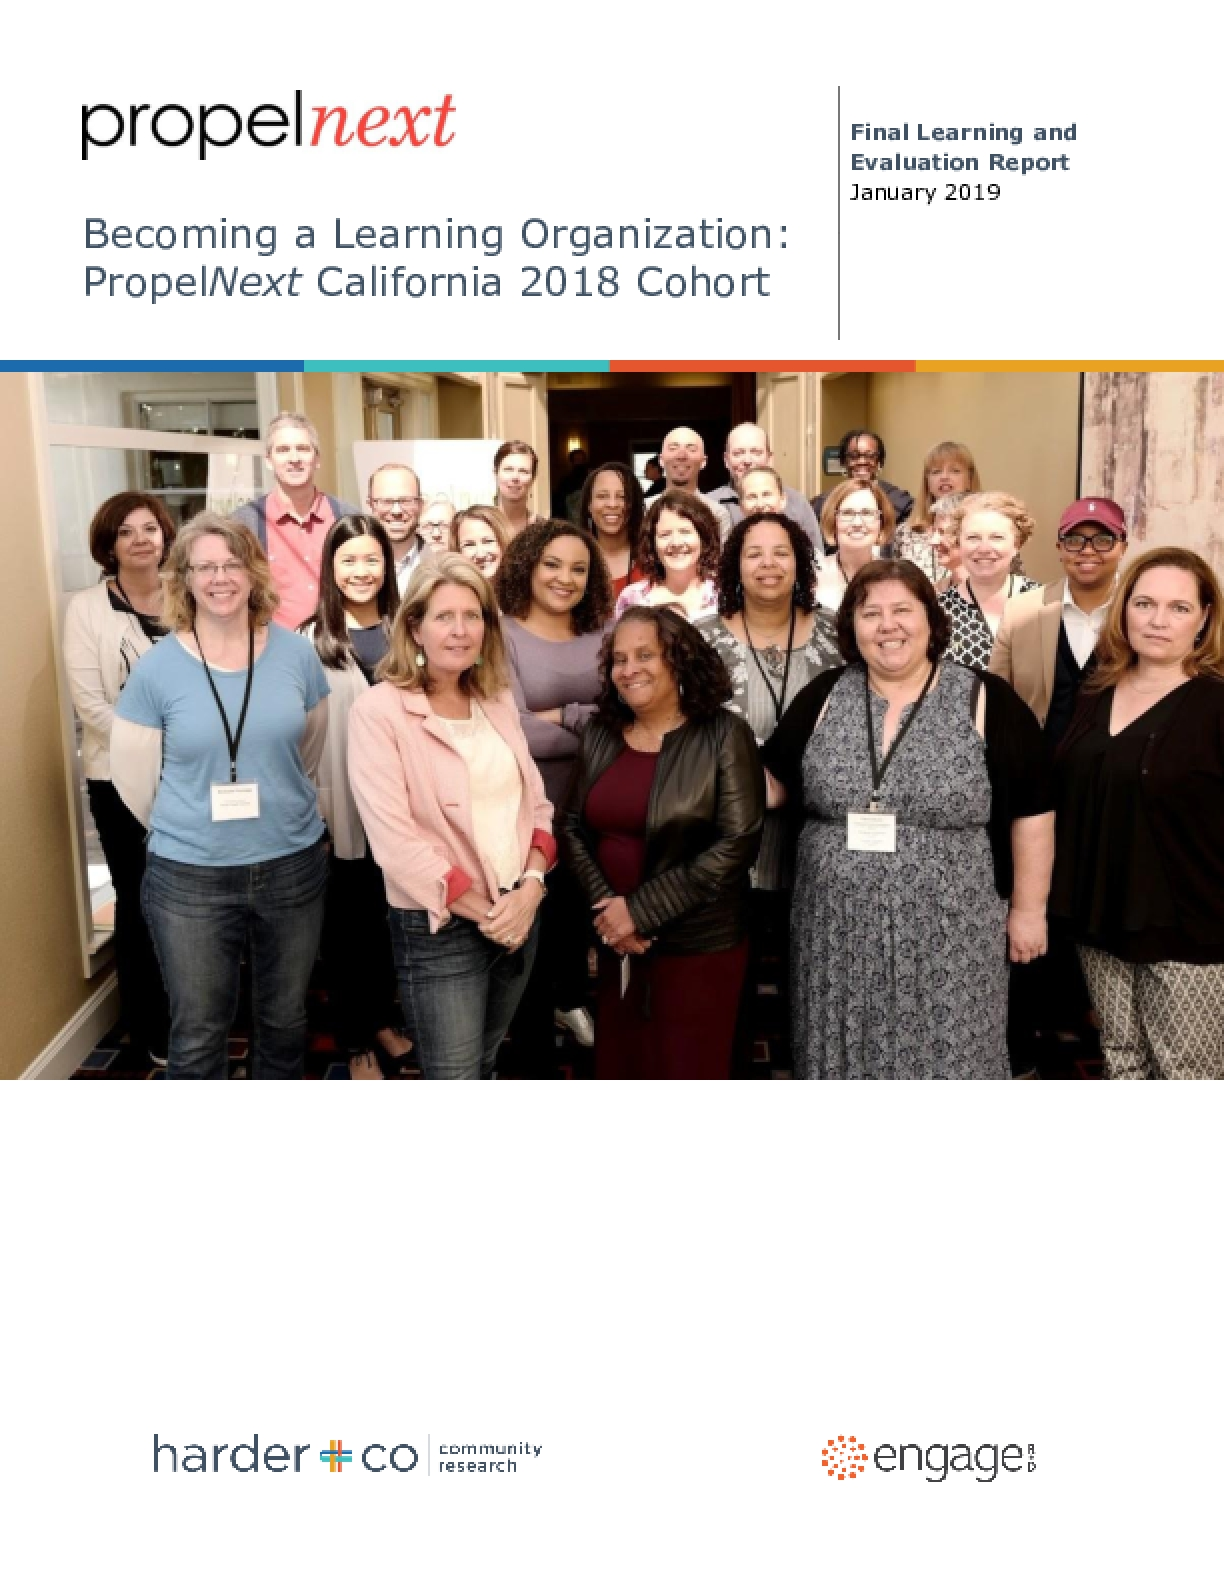 Becoming a Learning Organization: PropelNext California 2018 Cohort